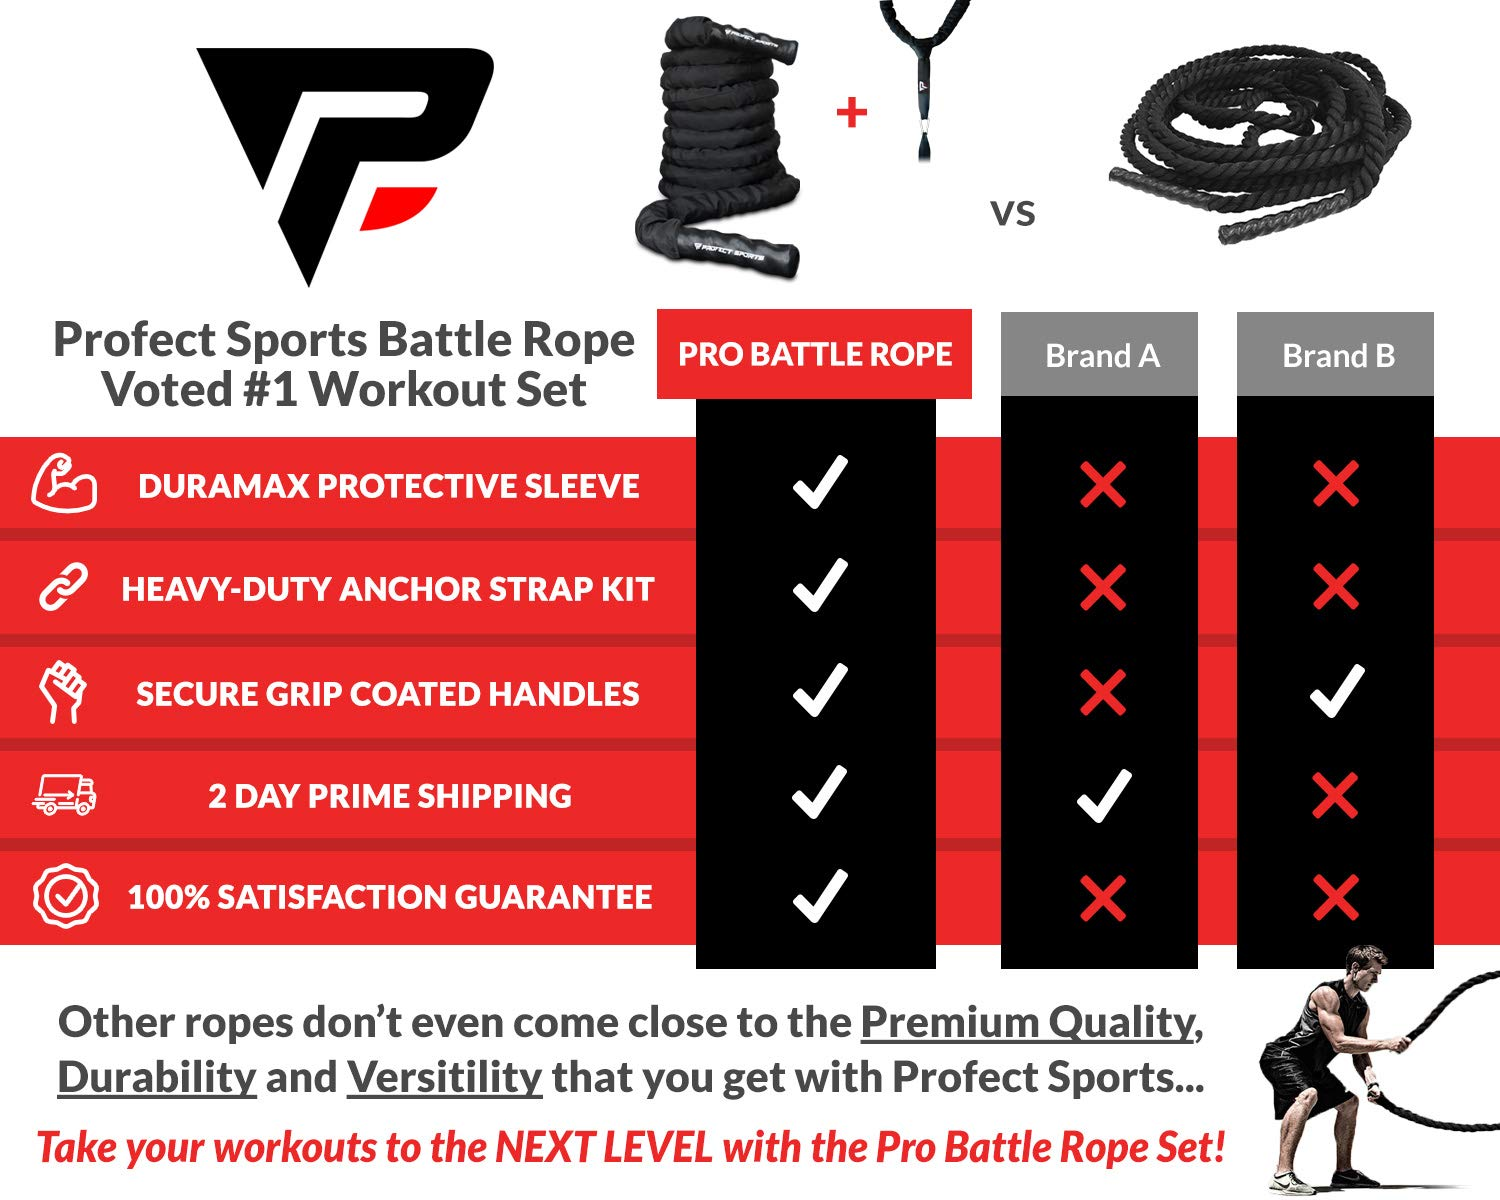 Pro Battle Ropes with Anchor Strap Kit - Upgraded Durable Protective Sleeve - 100% Poly Dacron Heavy Battle Rope for Strength Training, Cardio Workout, Crossfit, Fitness Exercise Rope (1.5'' x 30 ft) by Profect Sports (Image #3)